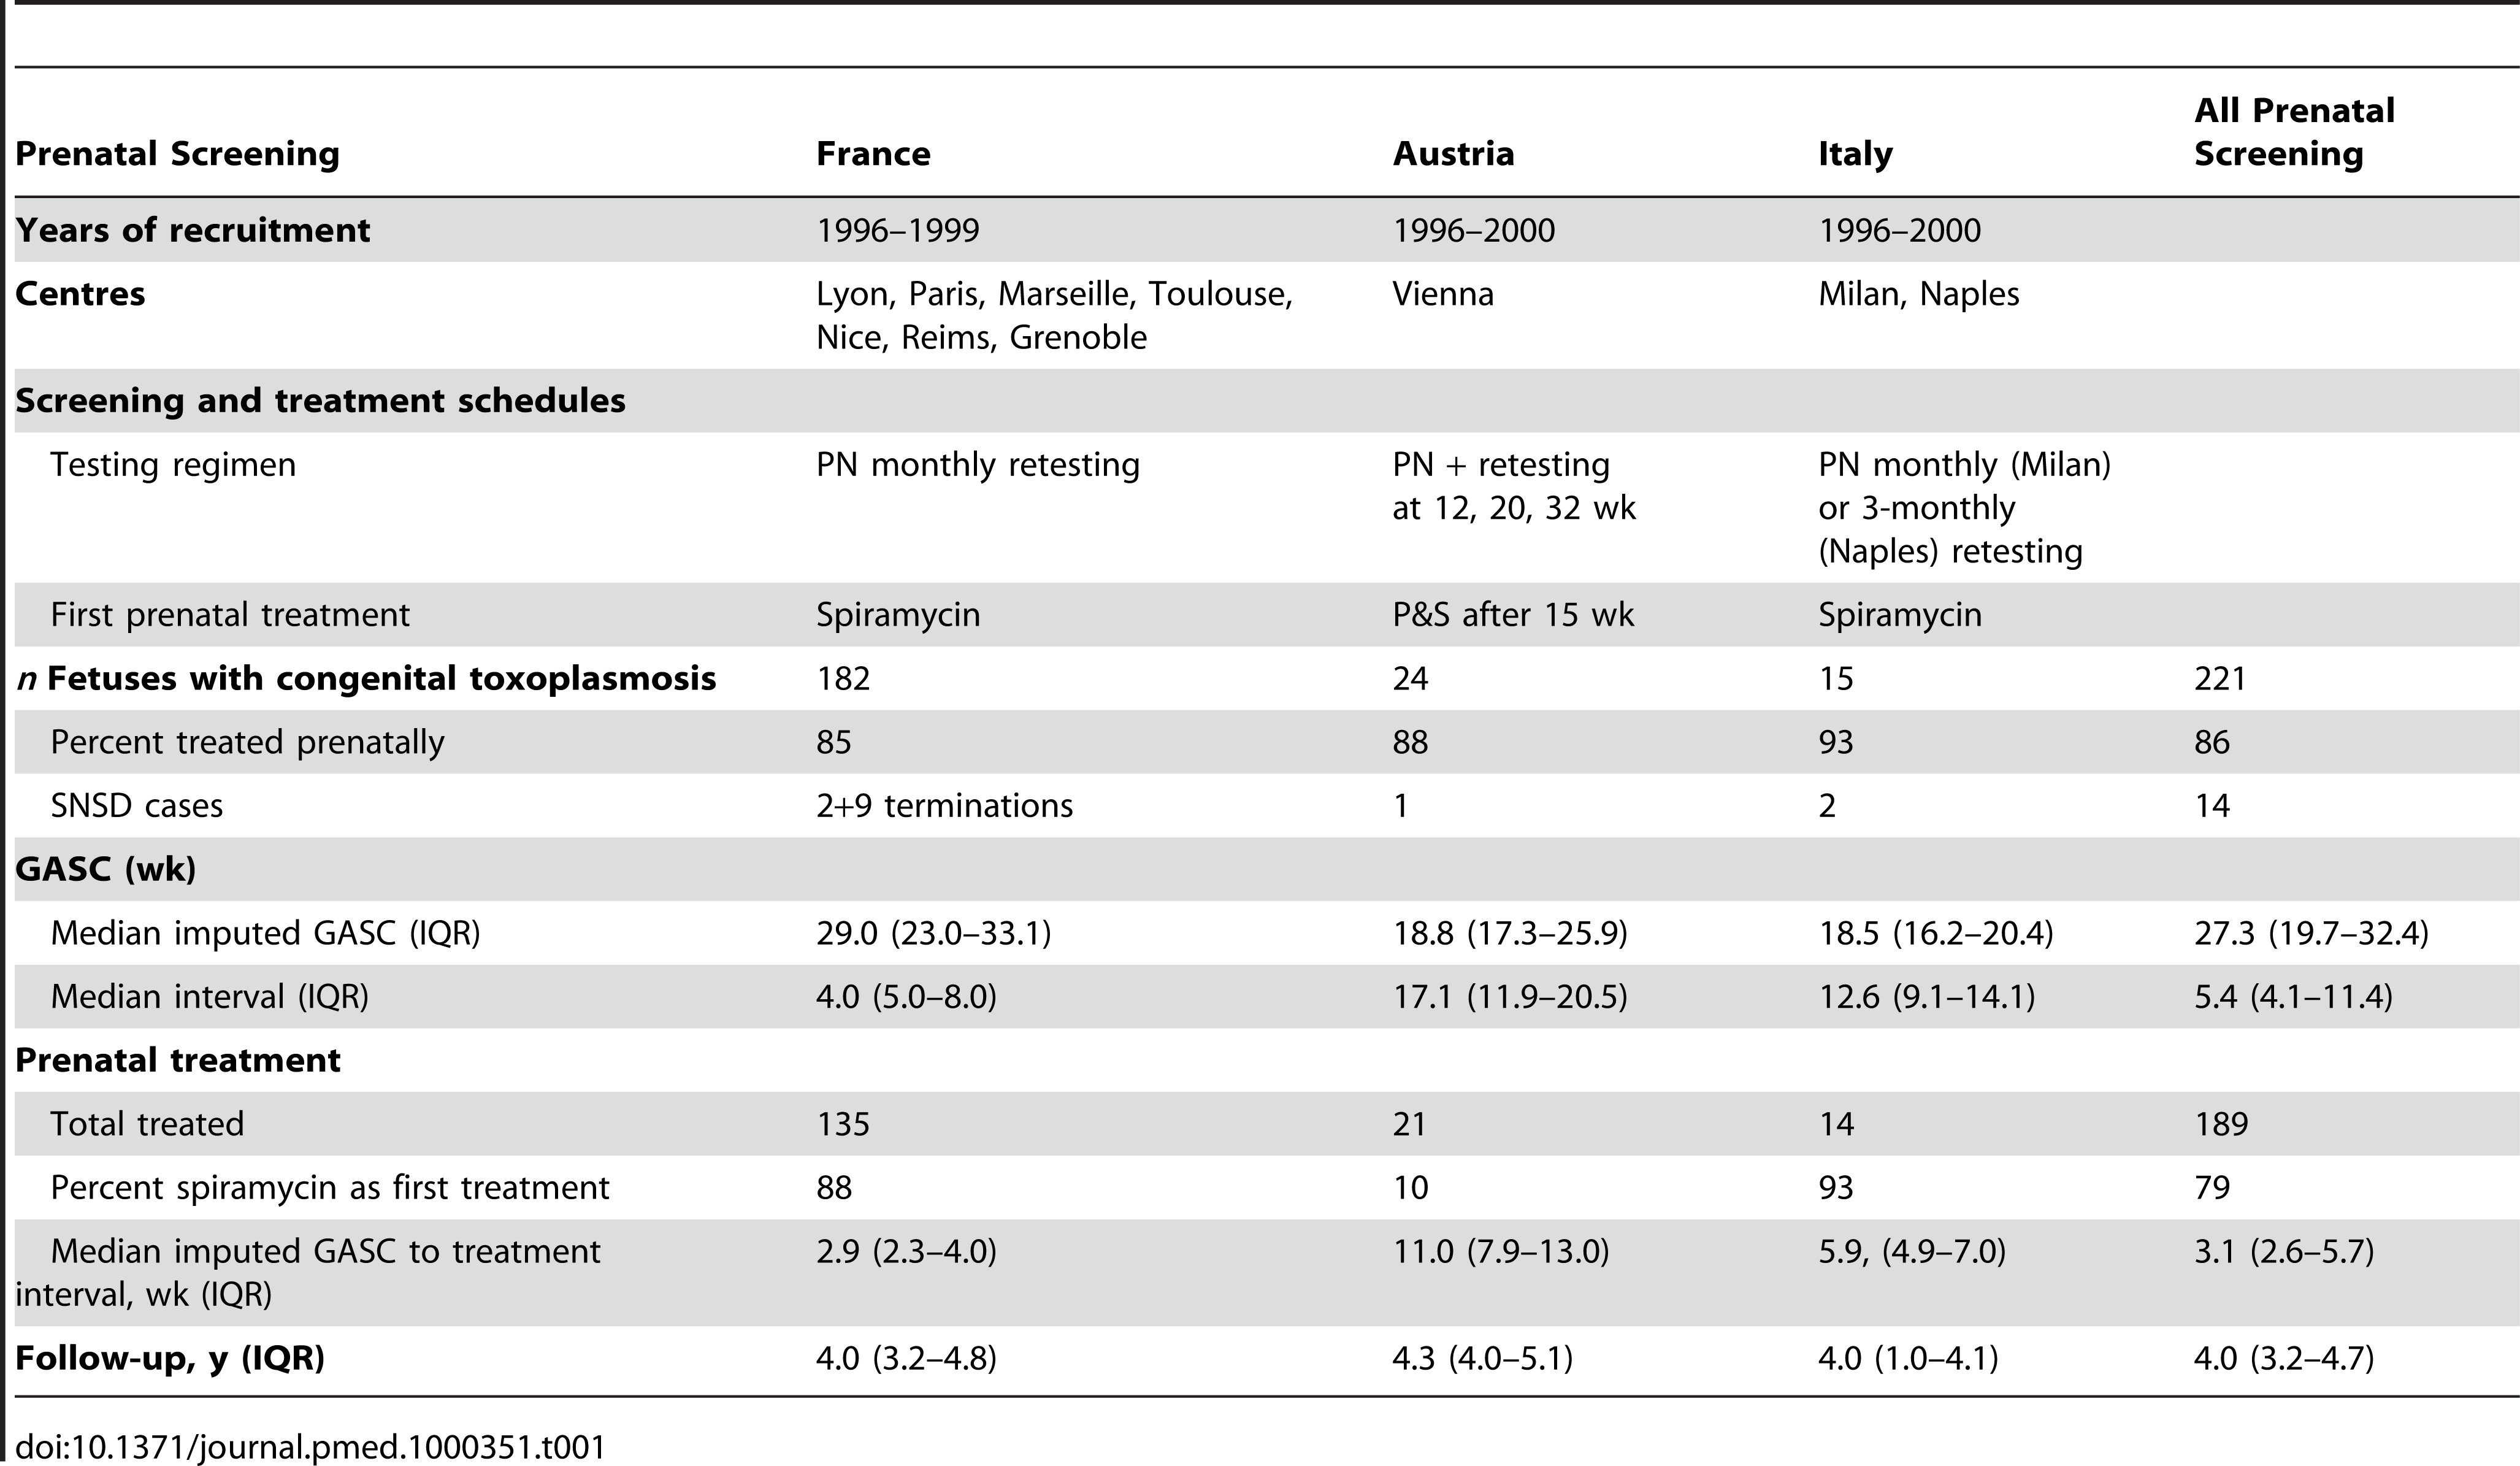 Characteristics of universal prenatal screening protocols and patients in study centres.